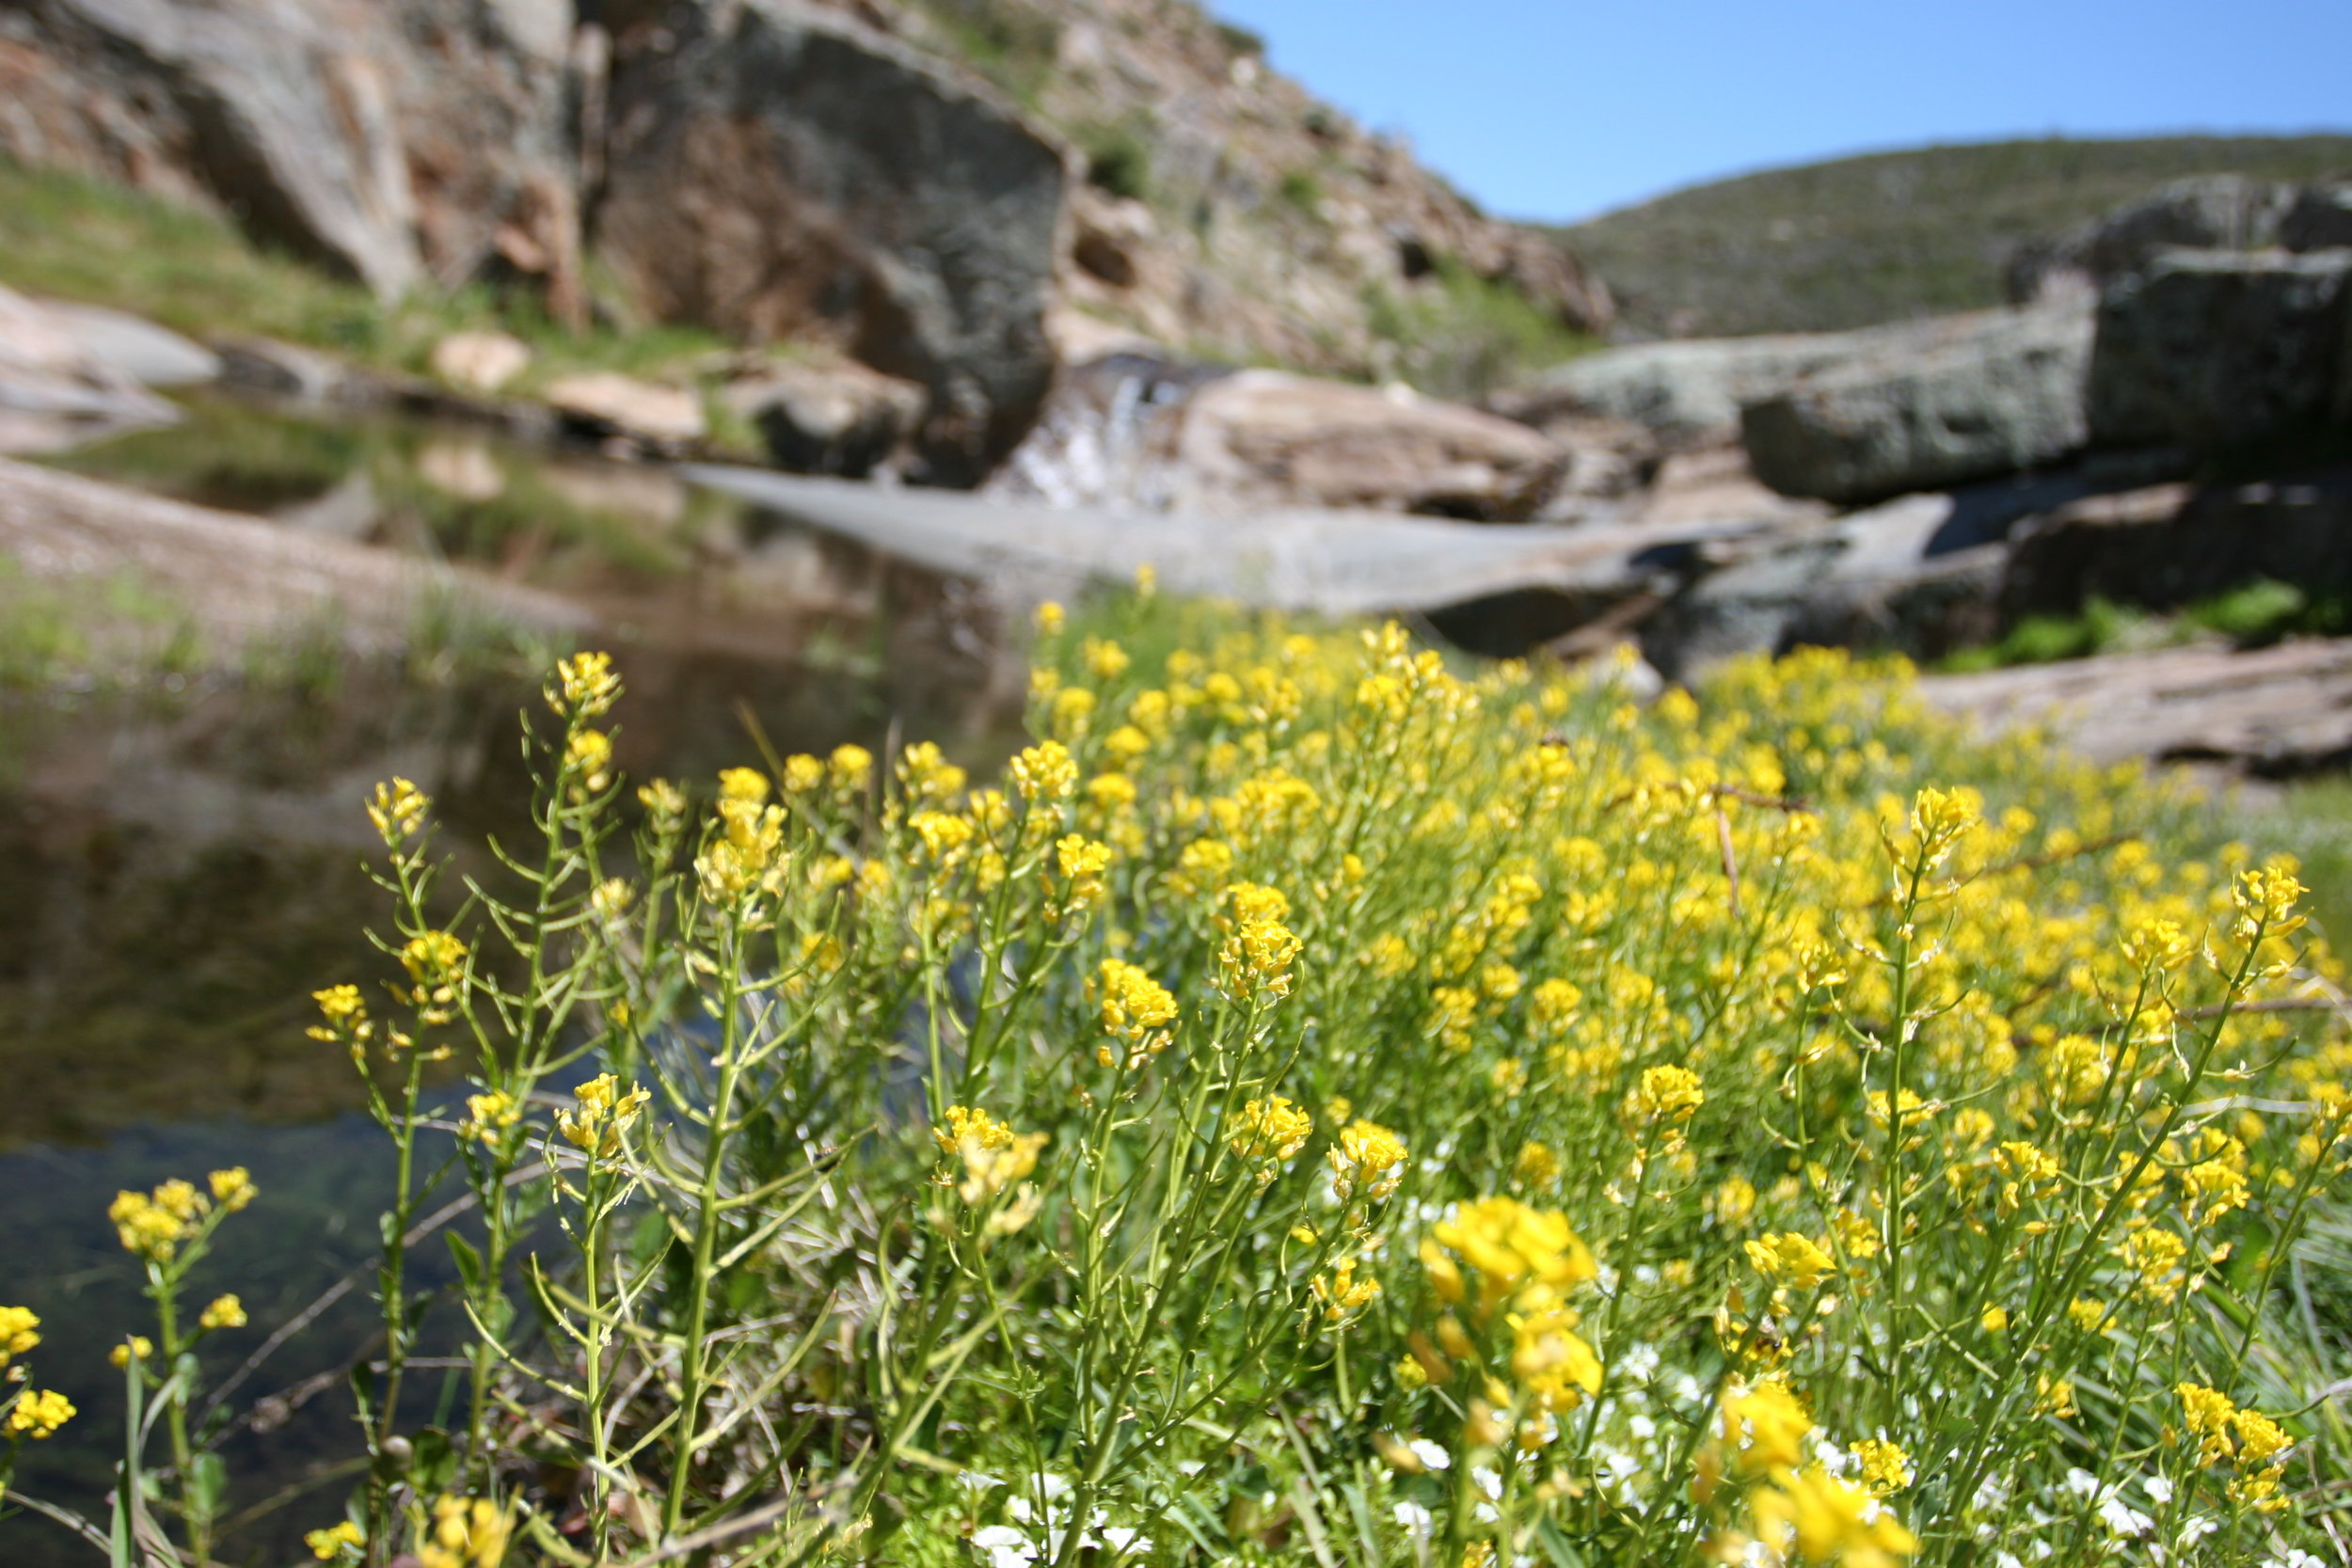 This area is a great spot to see spring wildflowers alongside the creek.